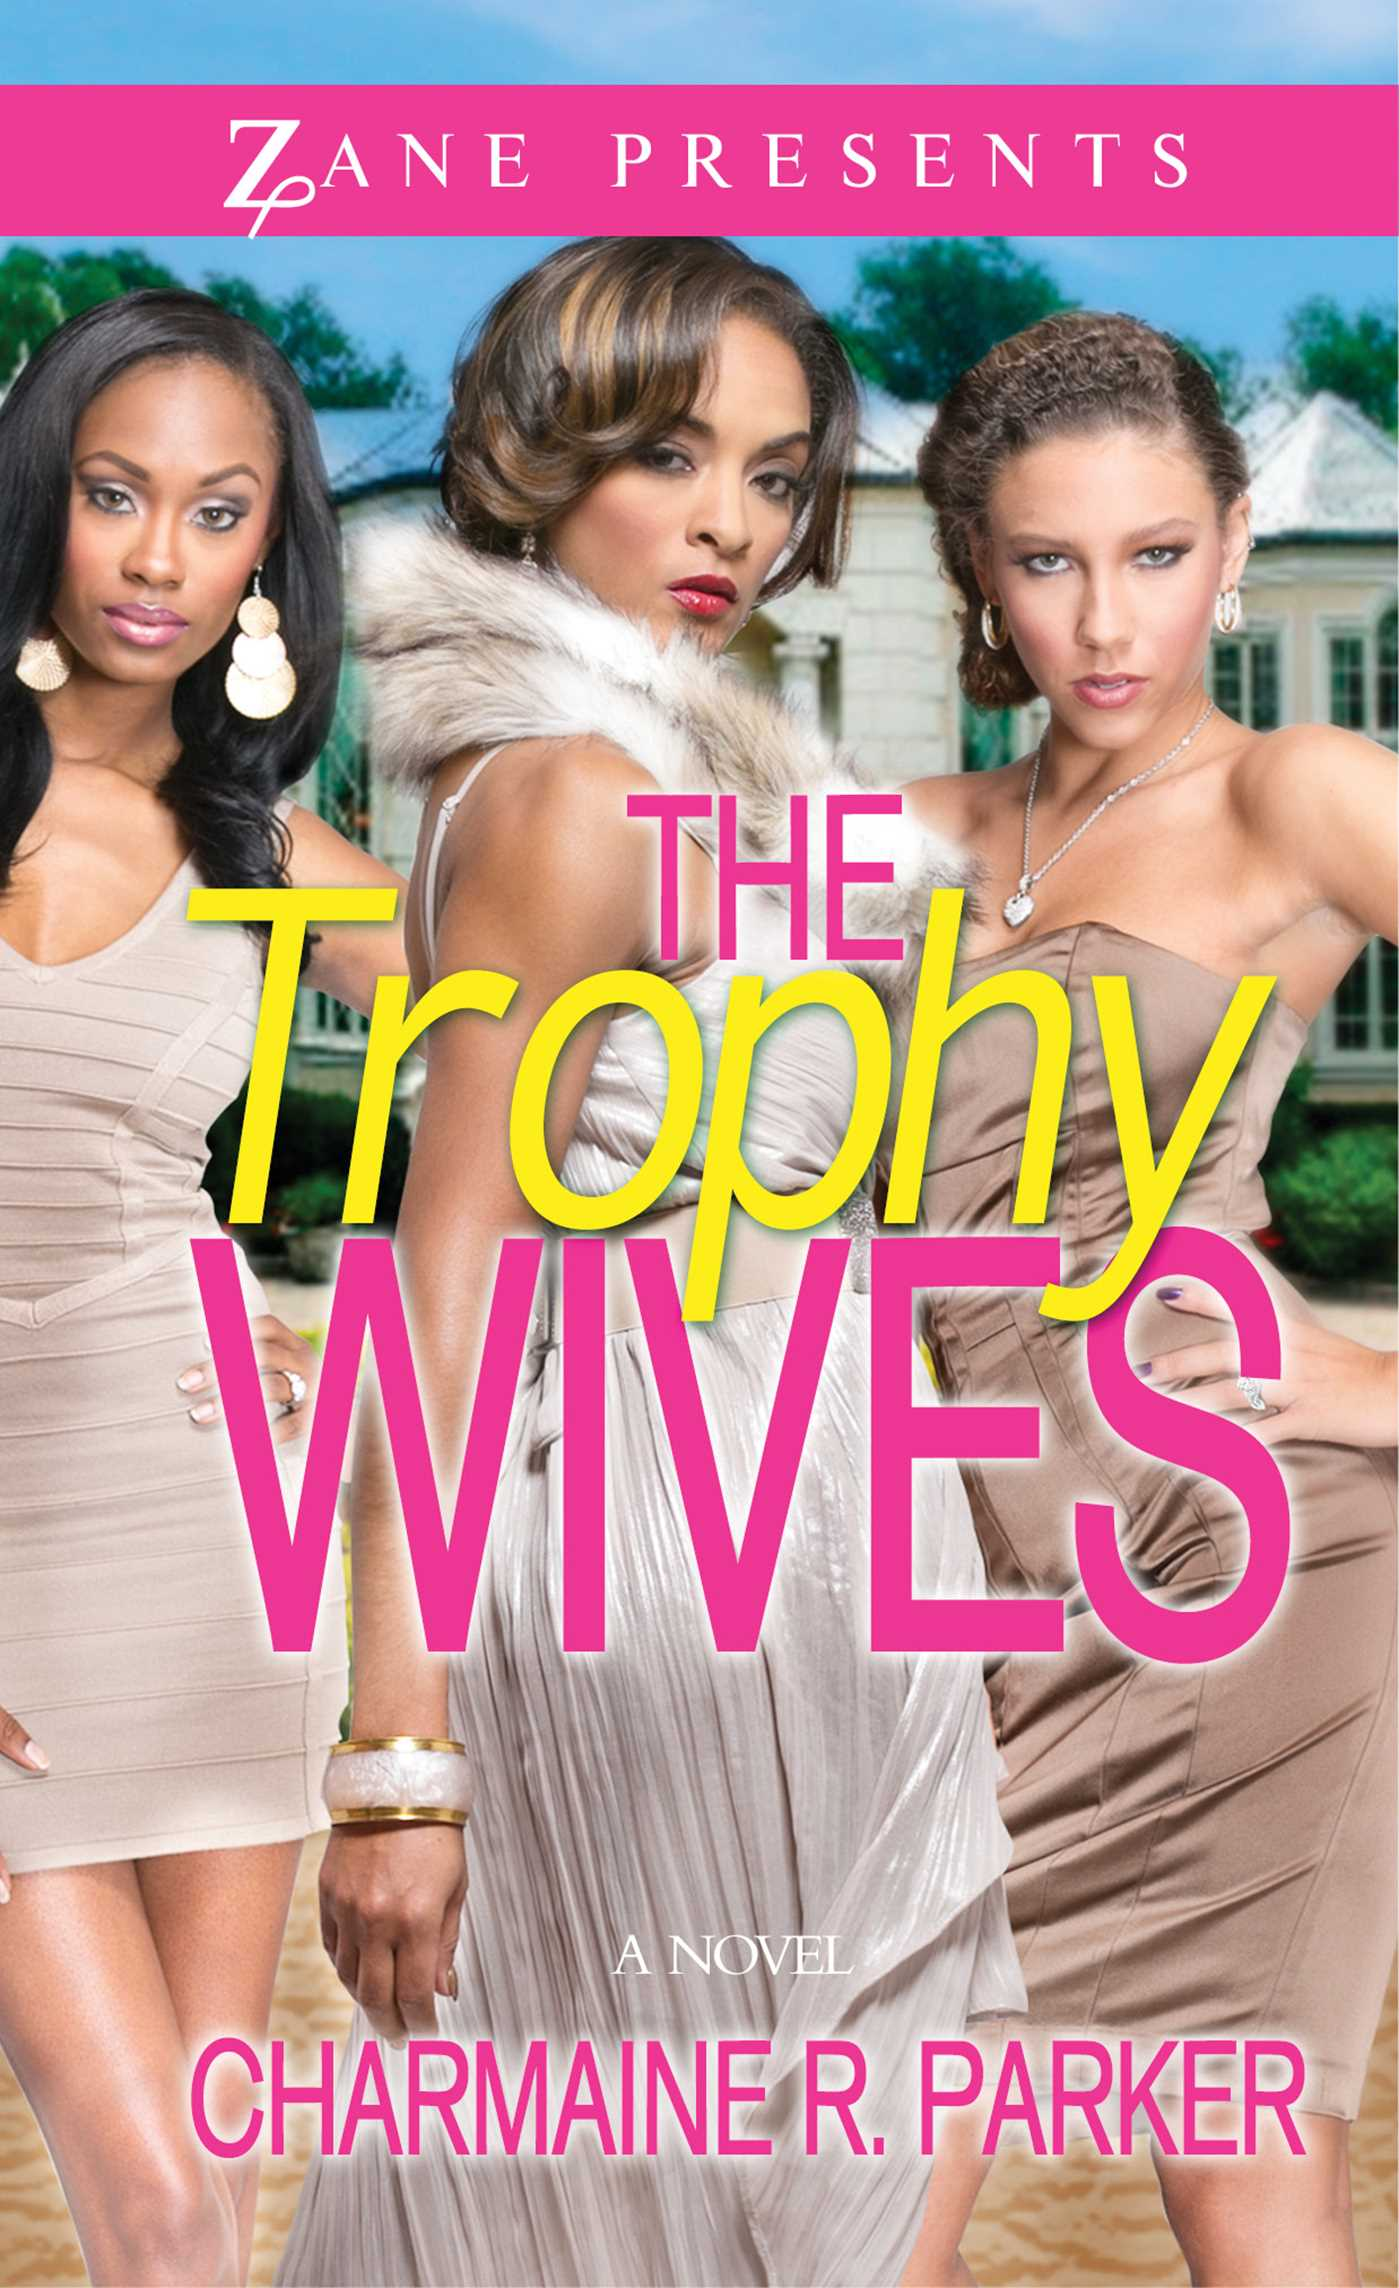 Trophy wives 9781593094669 hr